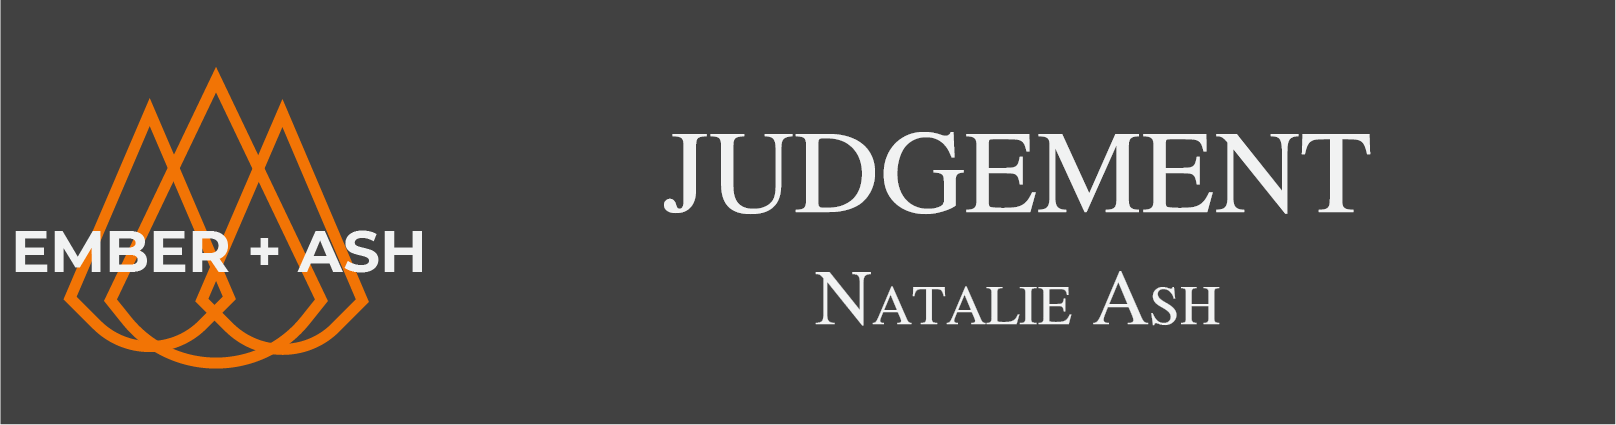 Judgement by Natalie Ash: A Game of Mourning for Esoteric by Jay Dragon